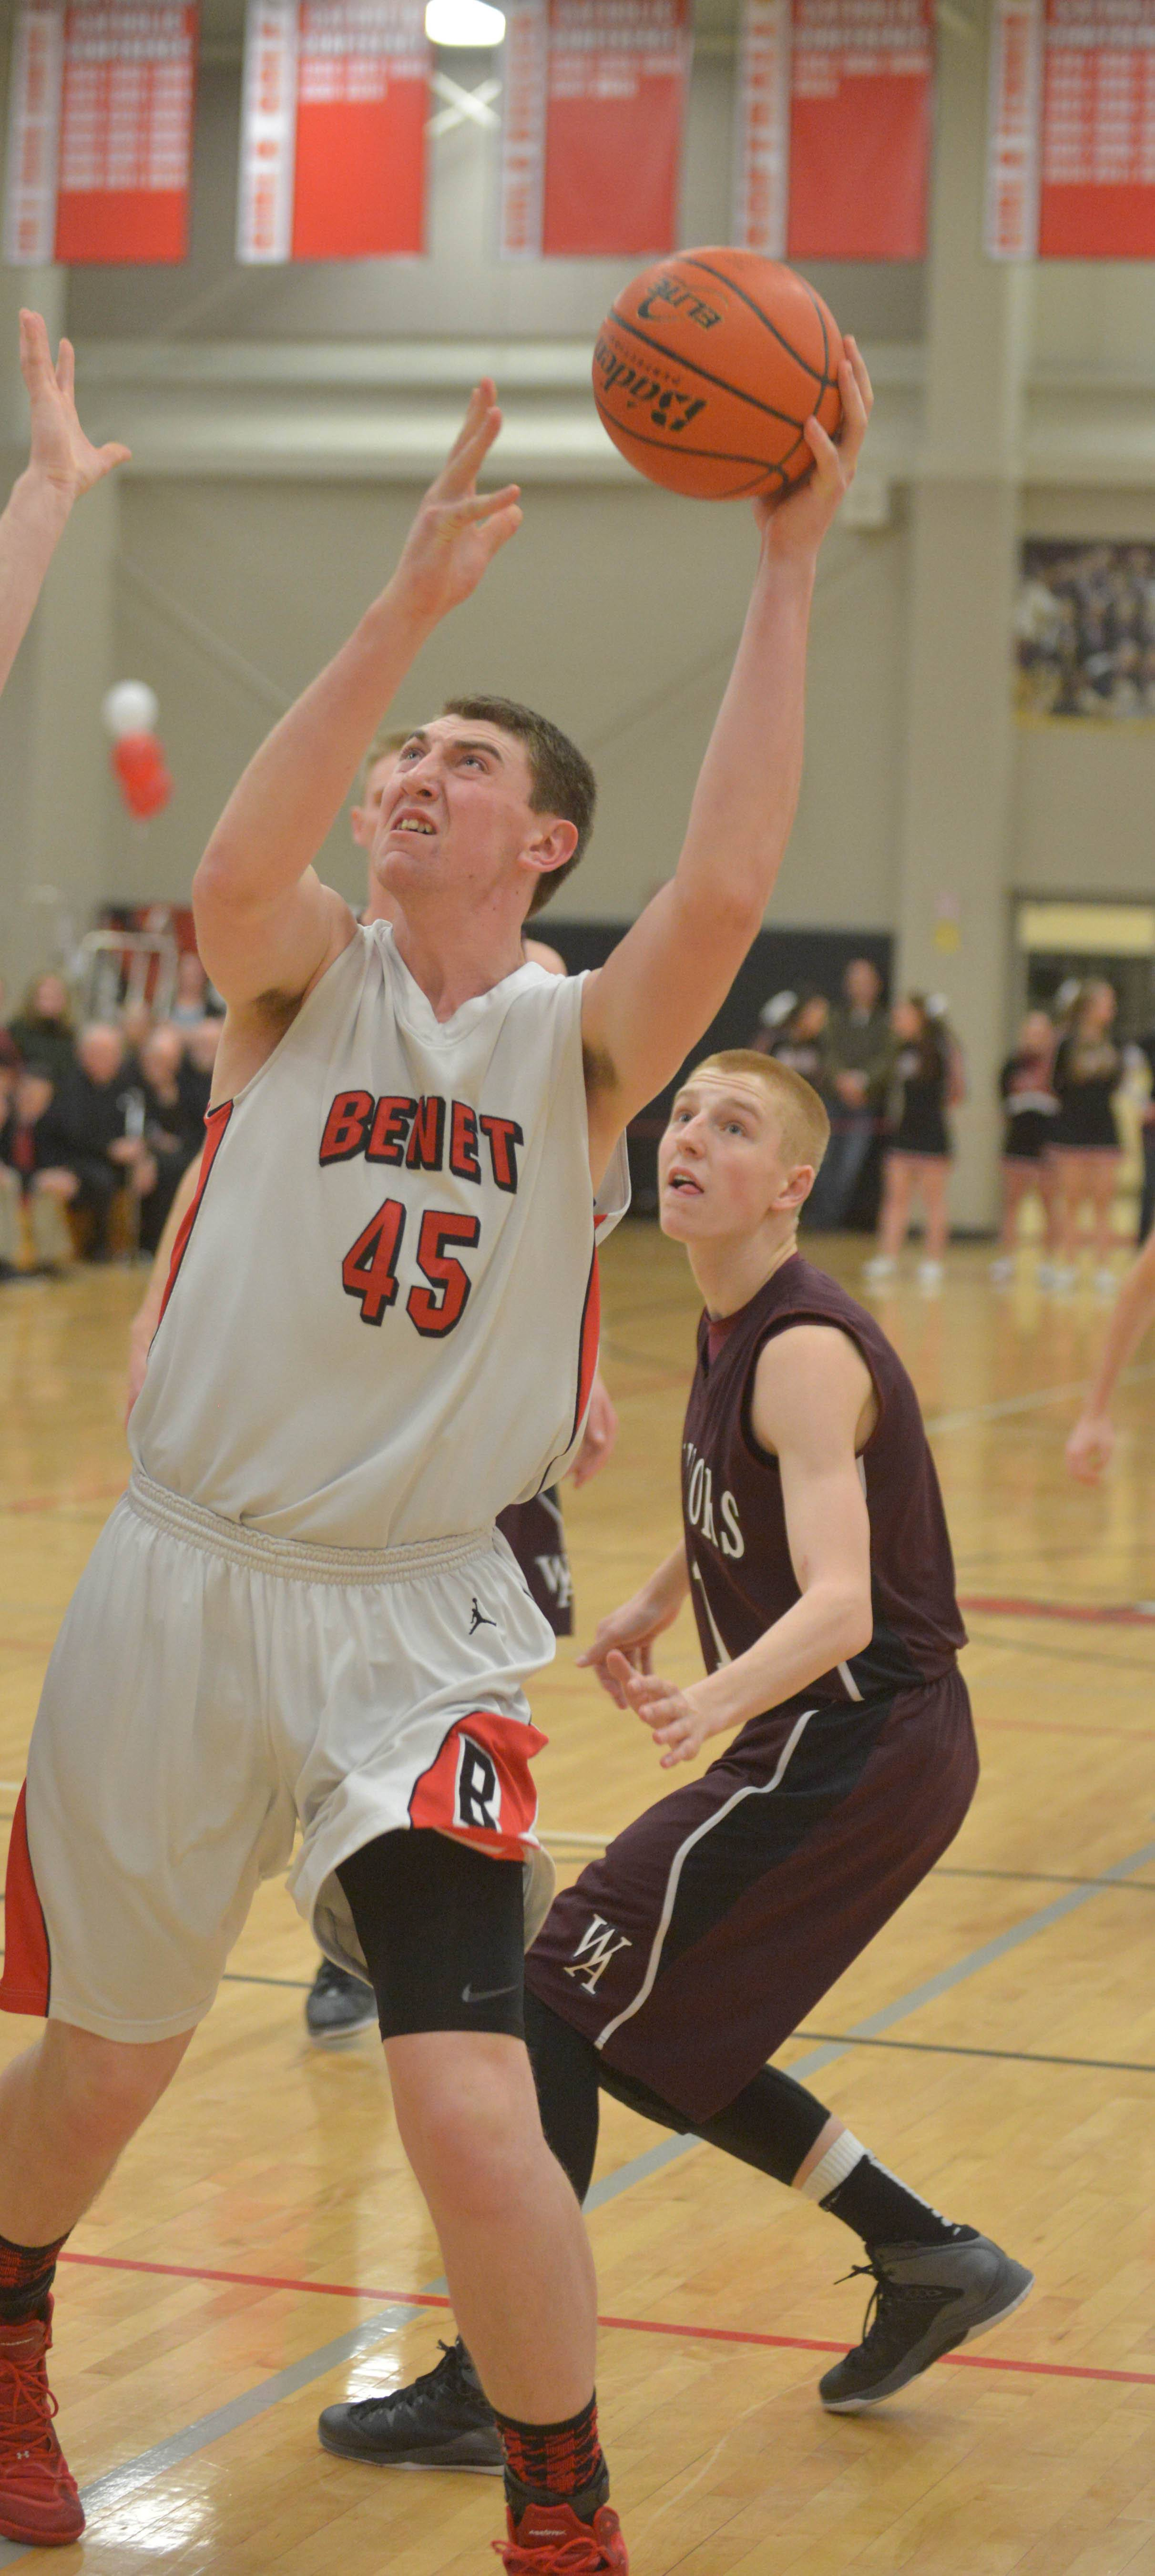 Sean O'Mara of Benet takes a shot .